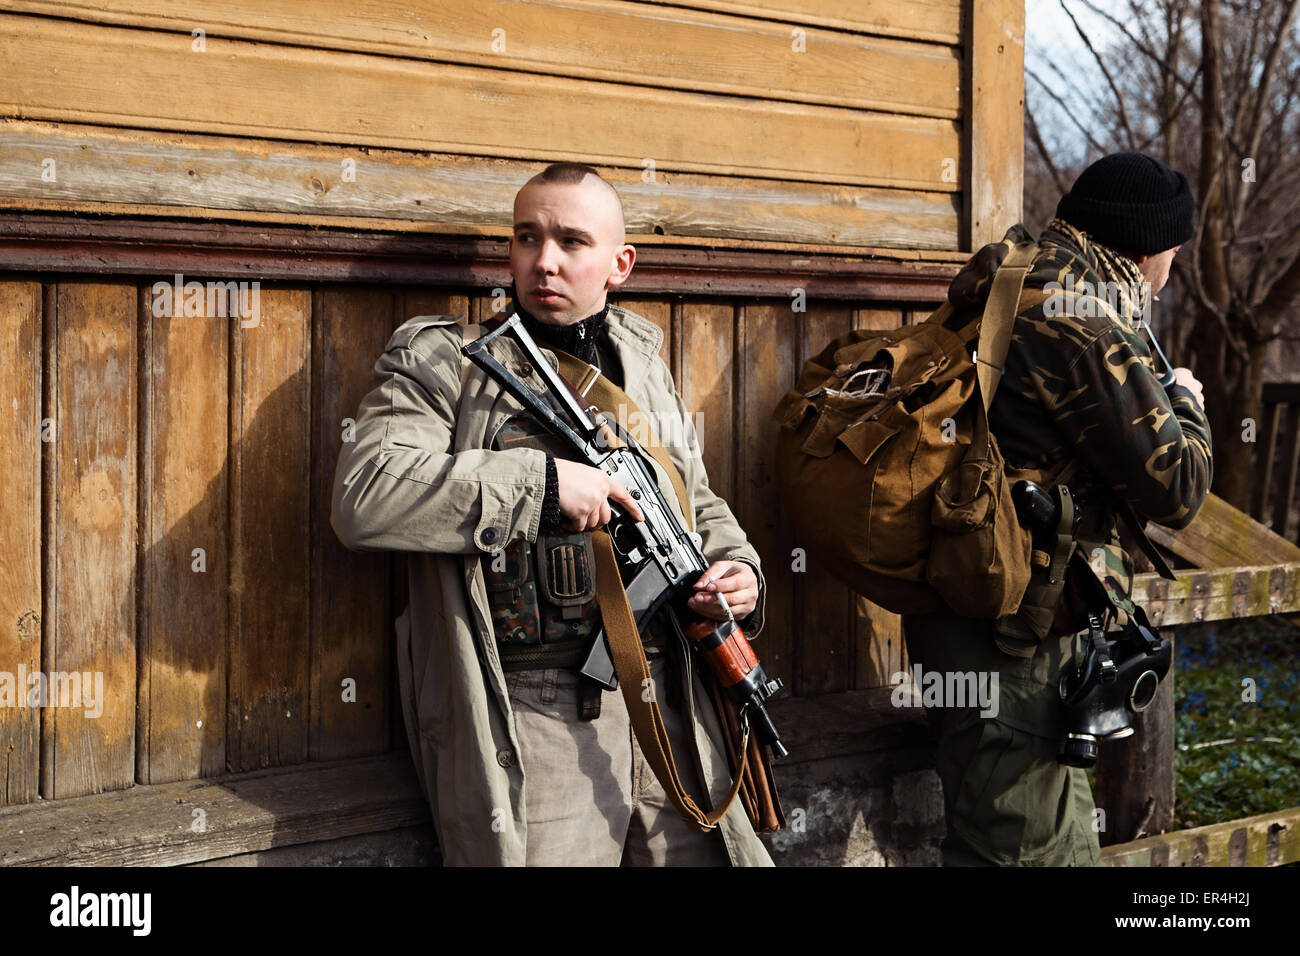 Hitman on operation of capturing the village - Stock Image